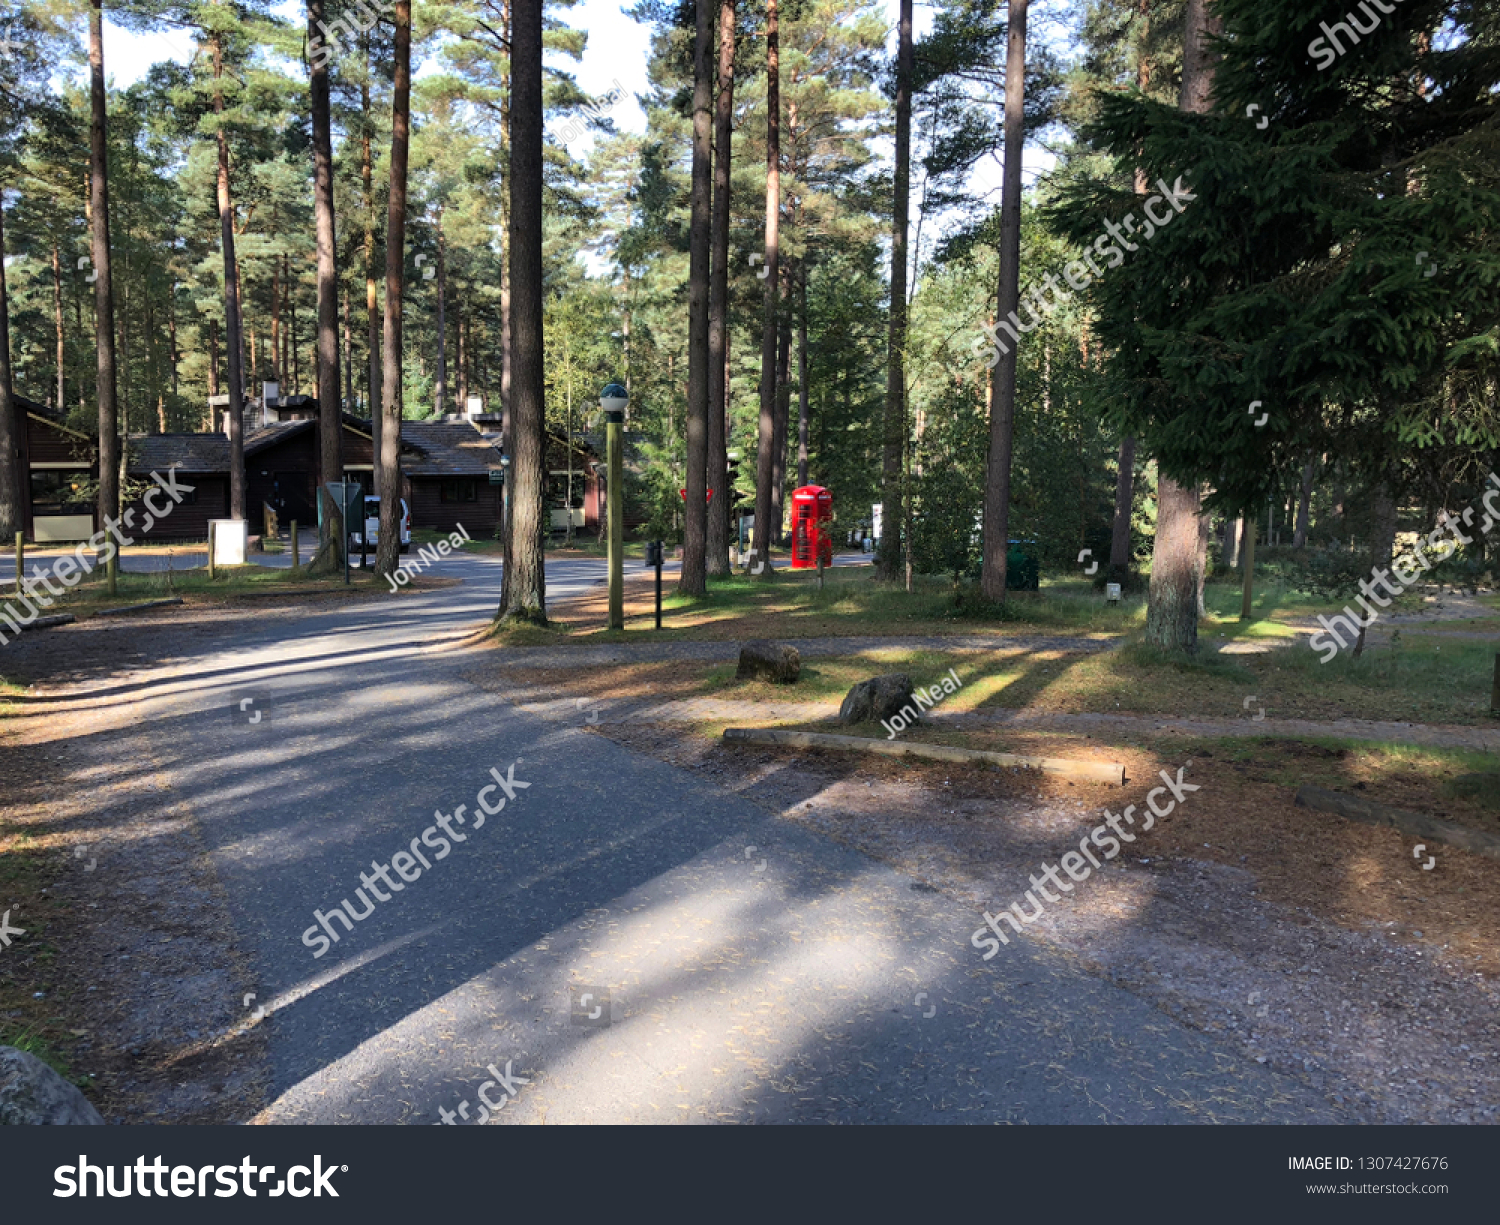 Center Parcs Whinfell Forest Uk Stock Photo Edit Now 1307427676